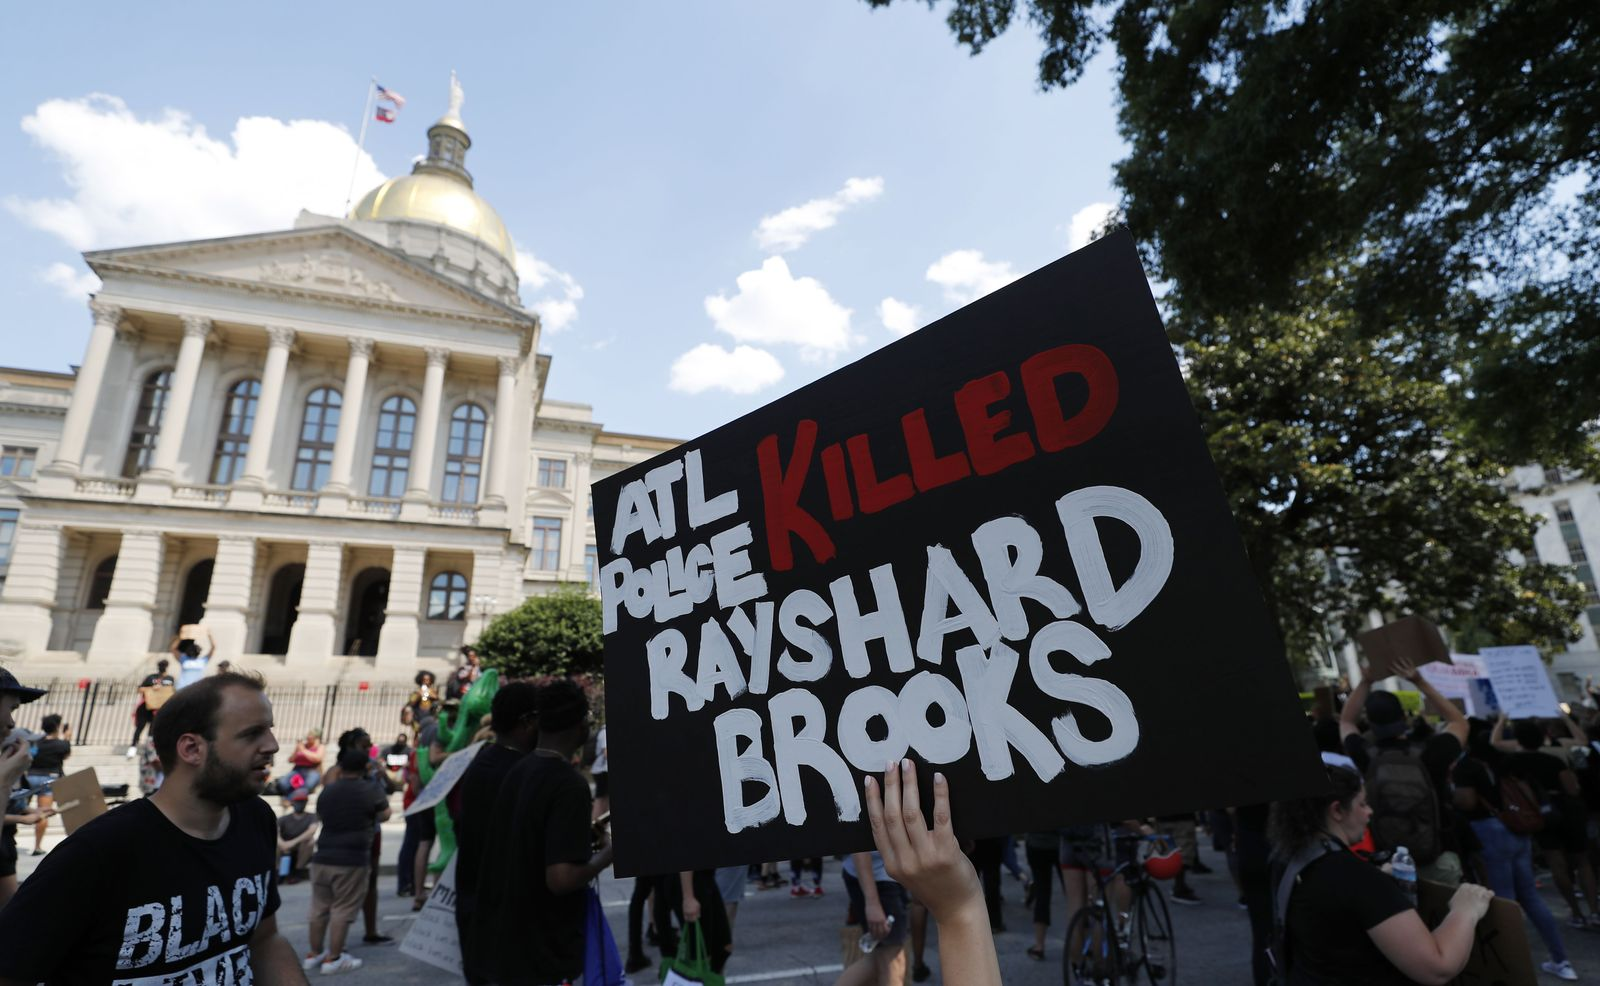 Black man shot and killed during incident with the Atlanta Police Department, USA - 13 Jun 2020